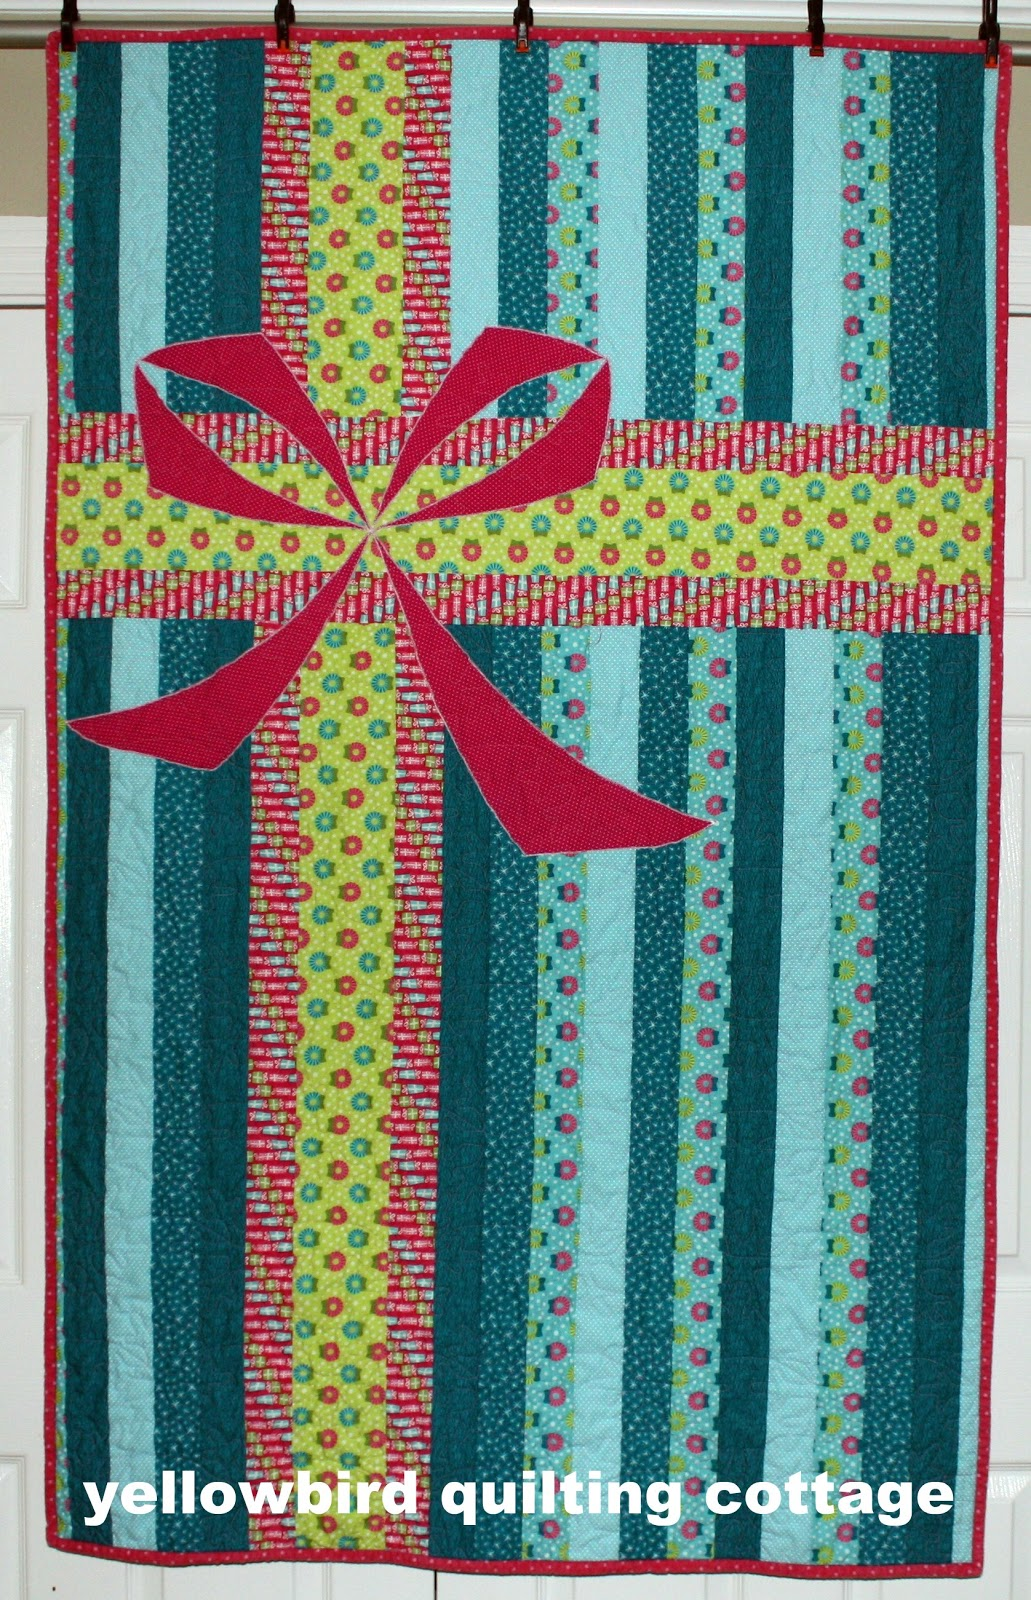 Yellow Bird Quilting Cottage Christmas Package Quilt